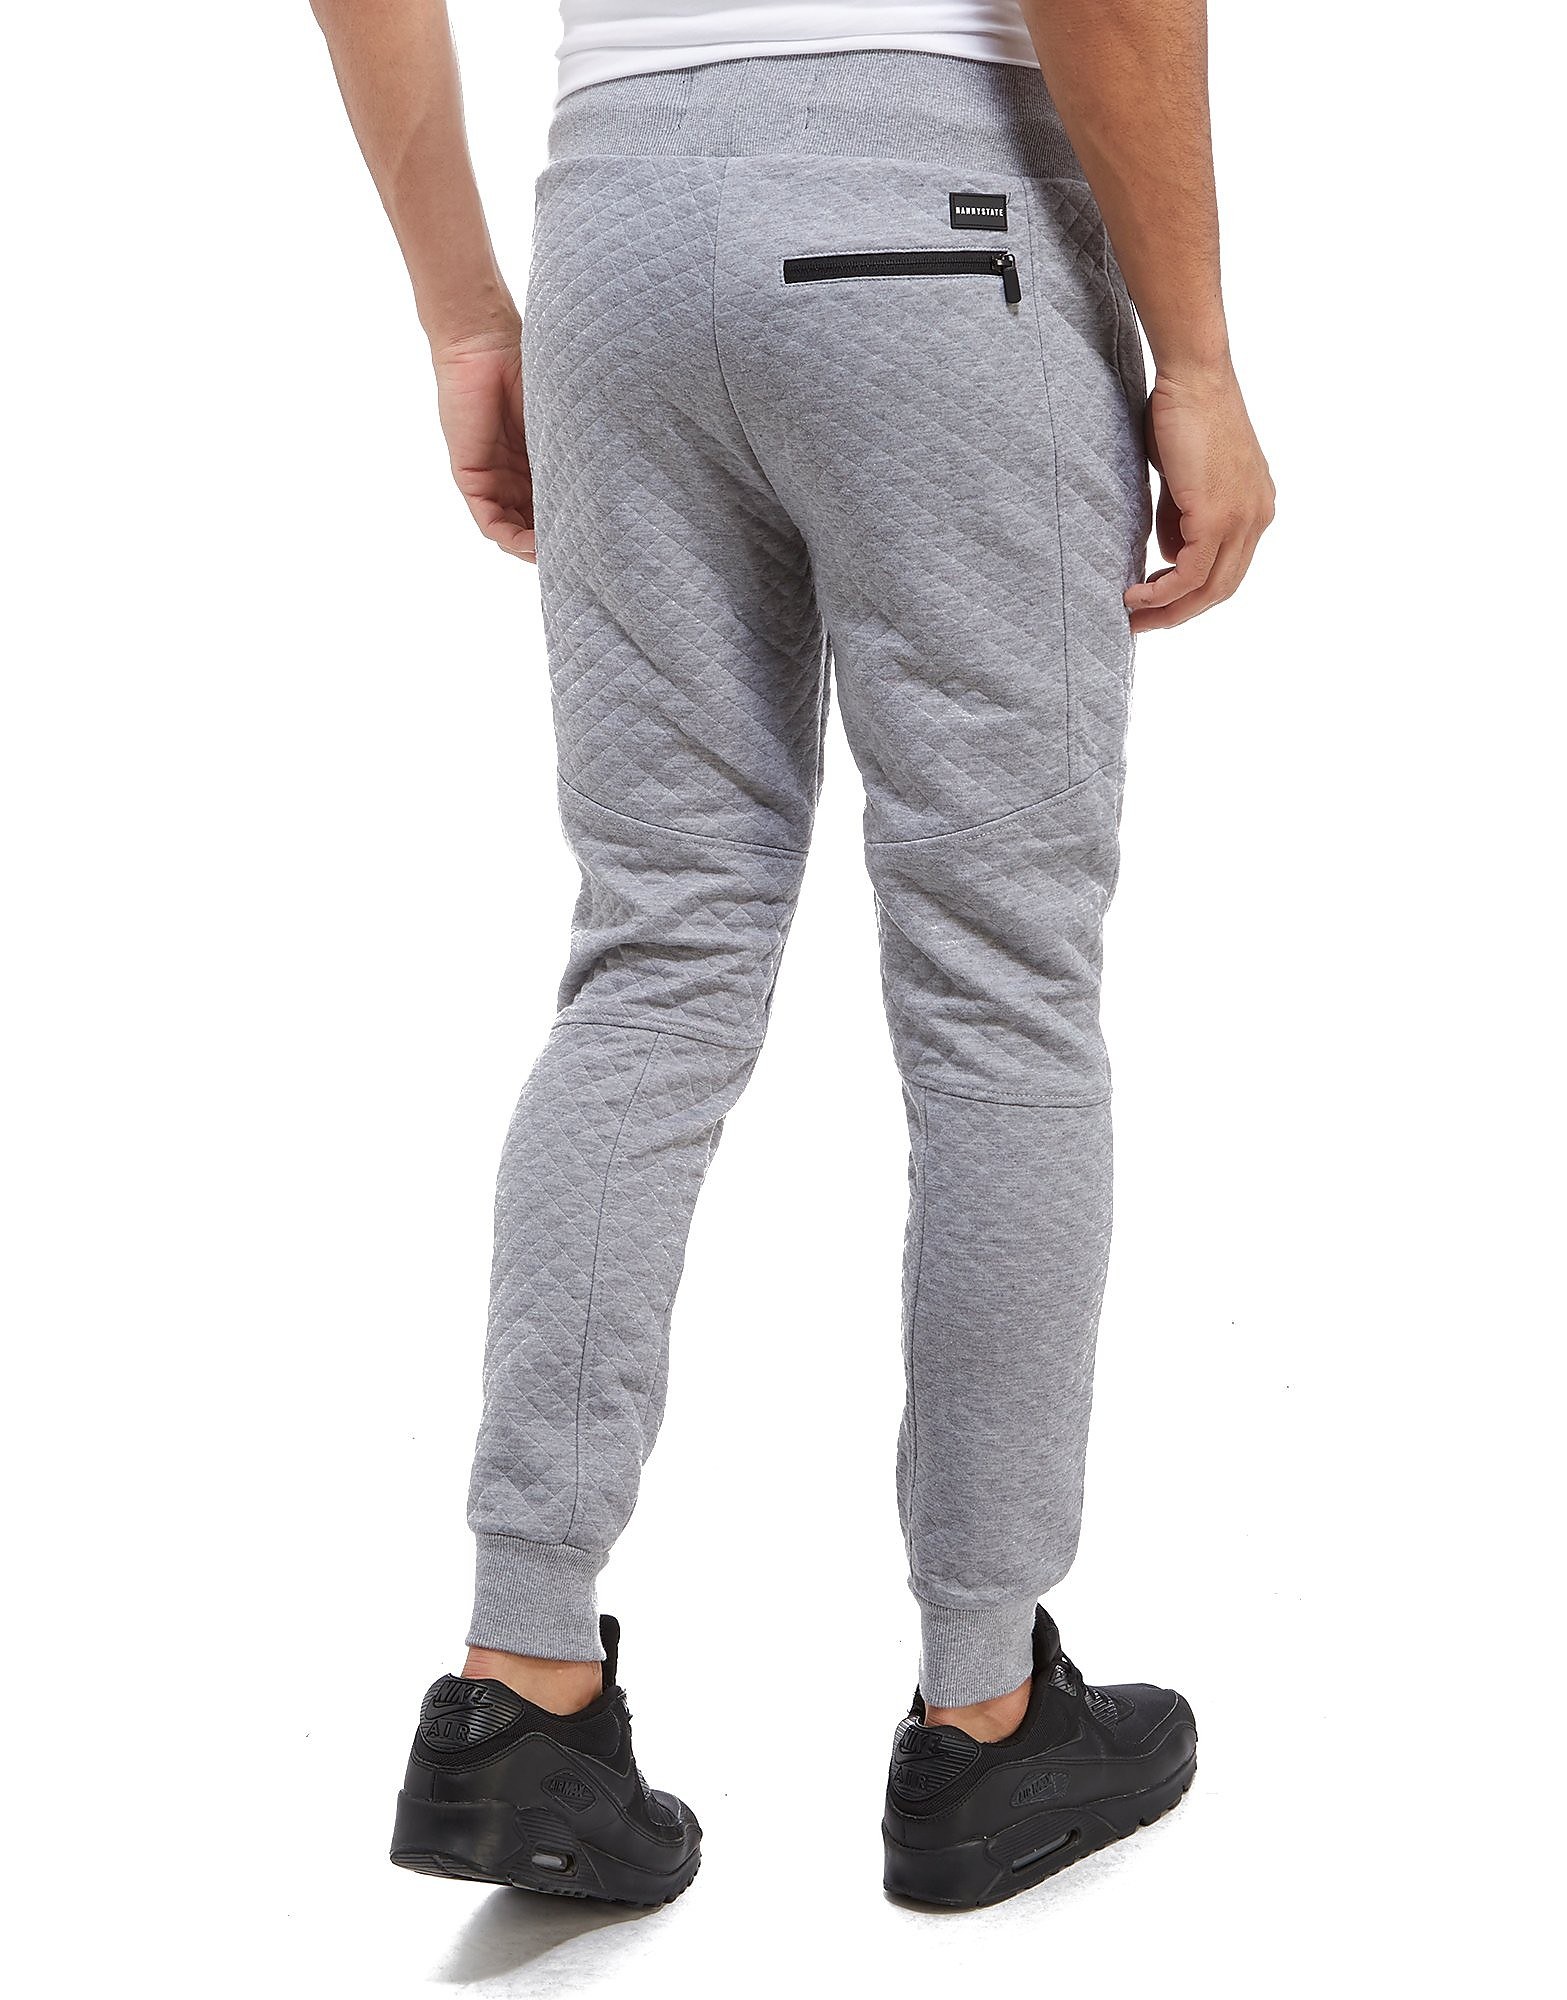 Nanny State Manton Jogging Pants